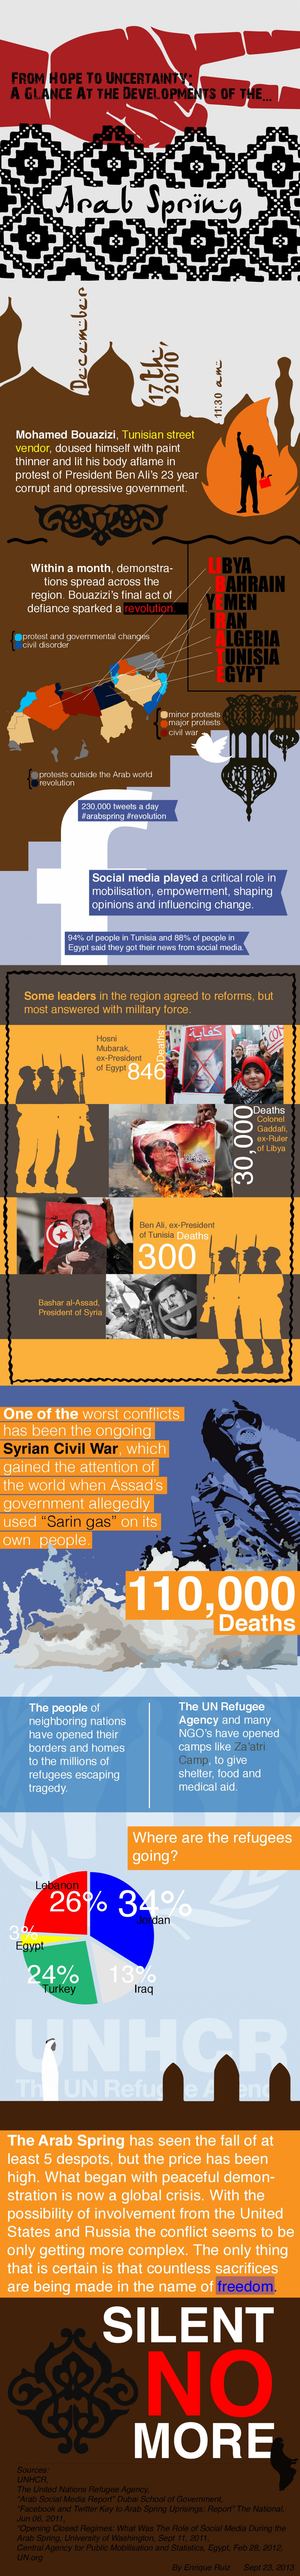 From Hope to Uncertainty: A Glance at the Developments of the Arab Spring Infographic